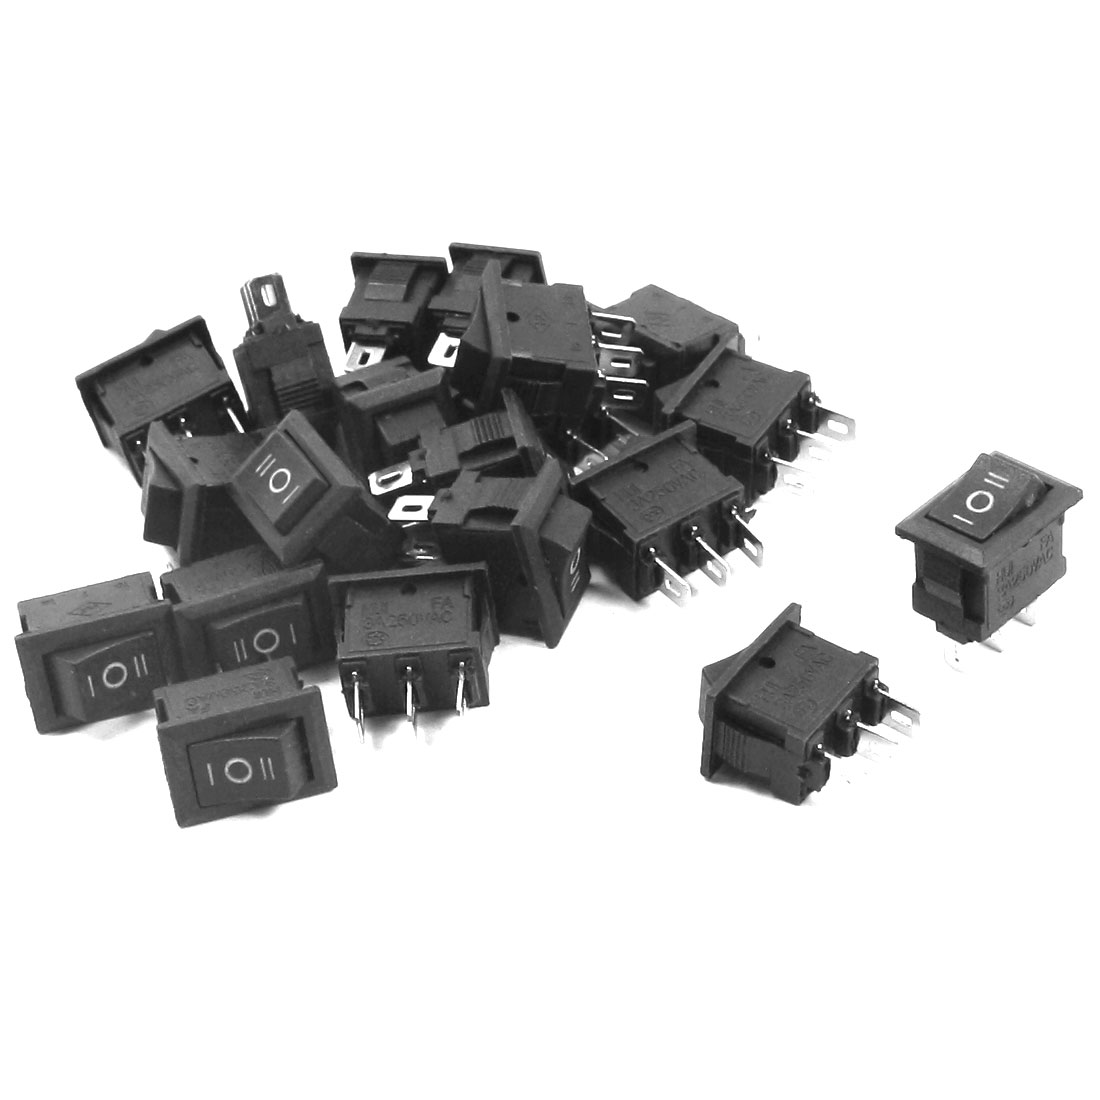 20PCS Black ON/OFF/ON SPDT Self-Locking Boat Rocker Switch AC250V 3A